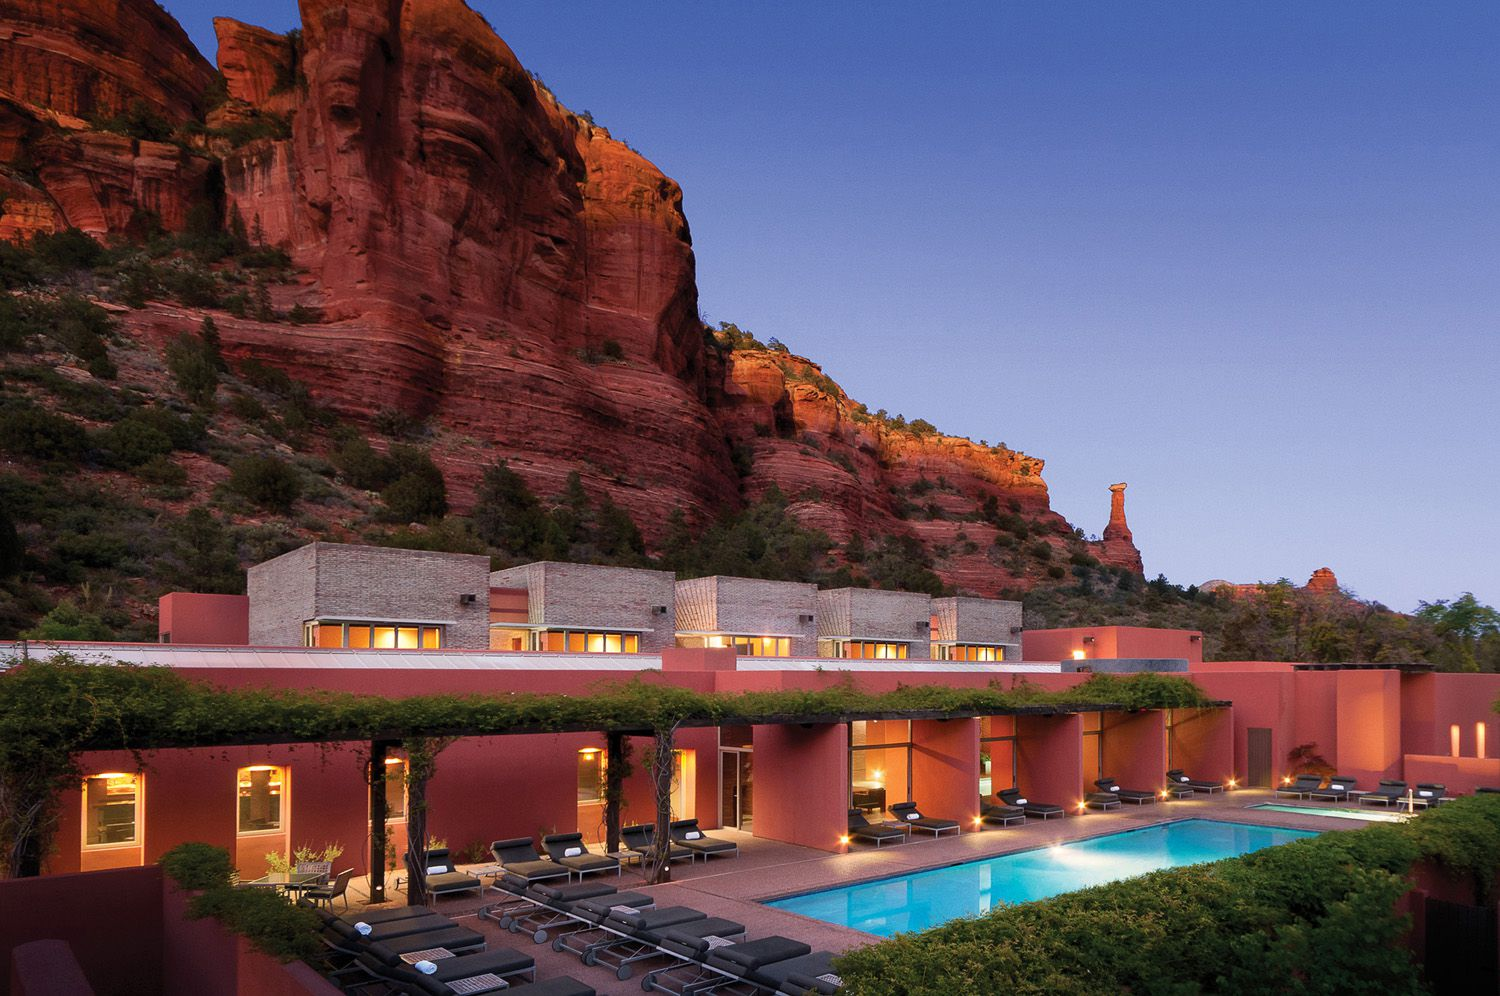 Luxury link vacation auctions webs go to for upscale deals